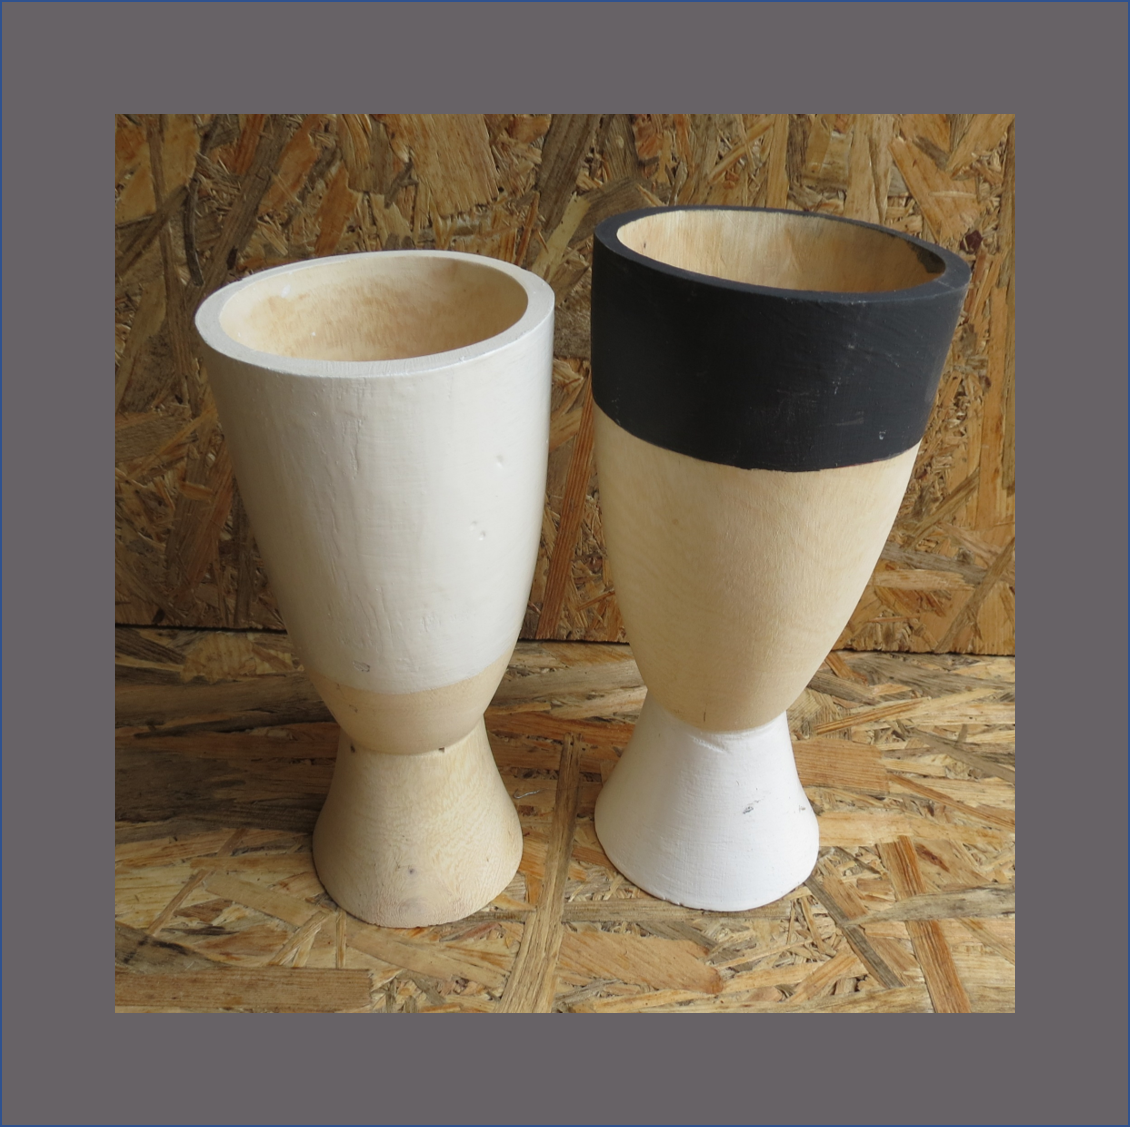 wooden-hand-crafted-vase